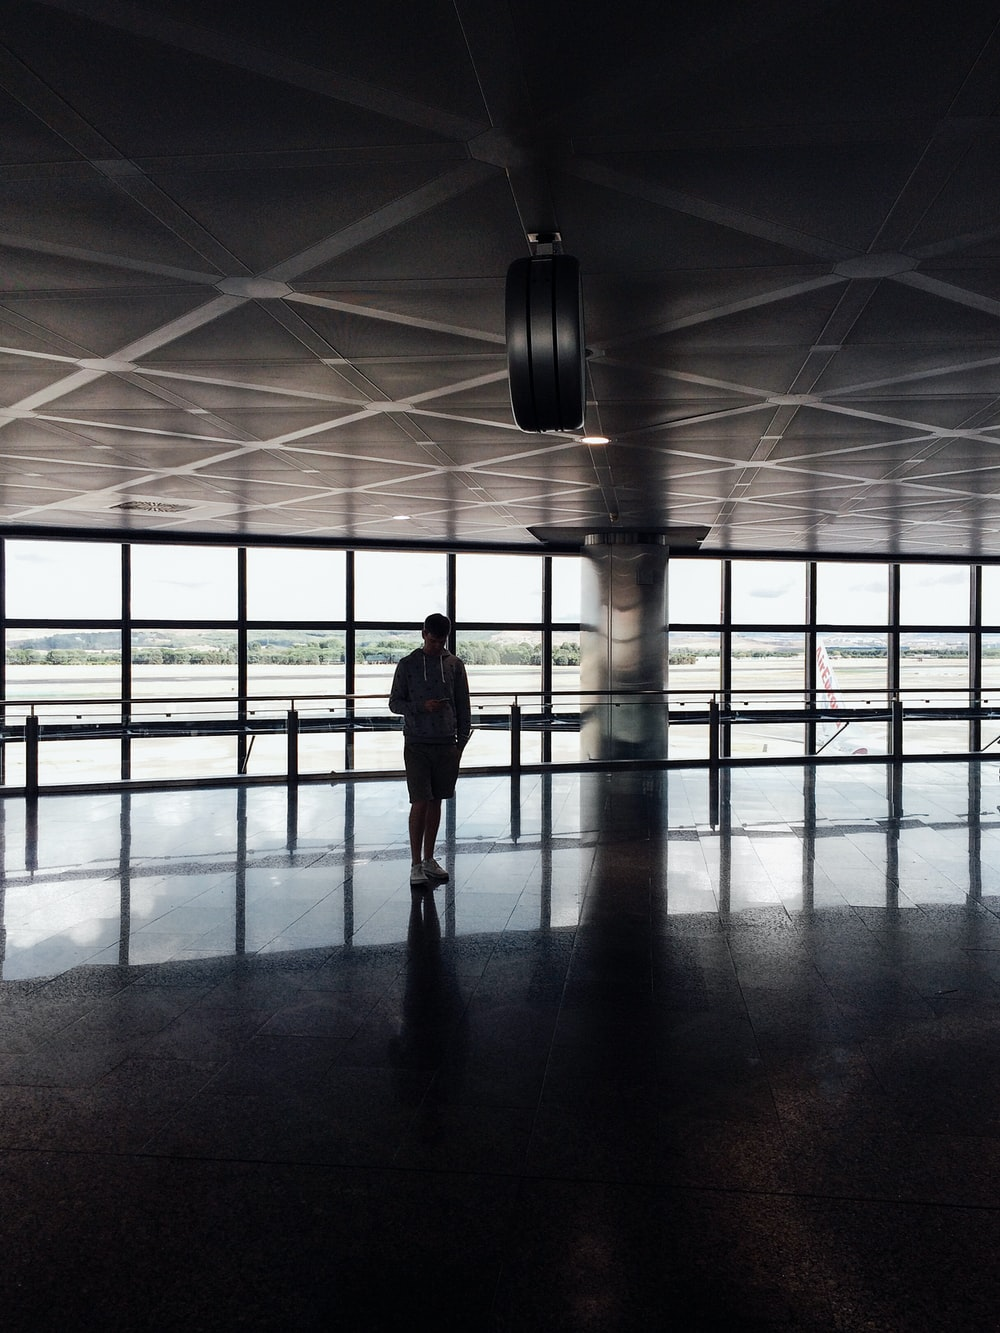 silhouette photo of person inside building